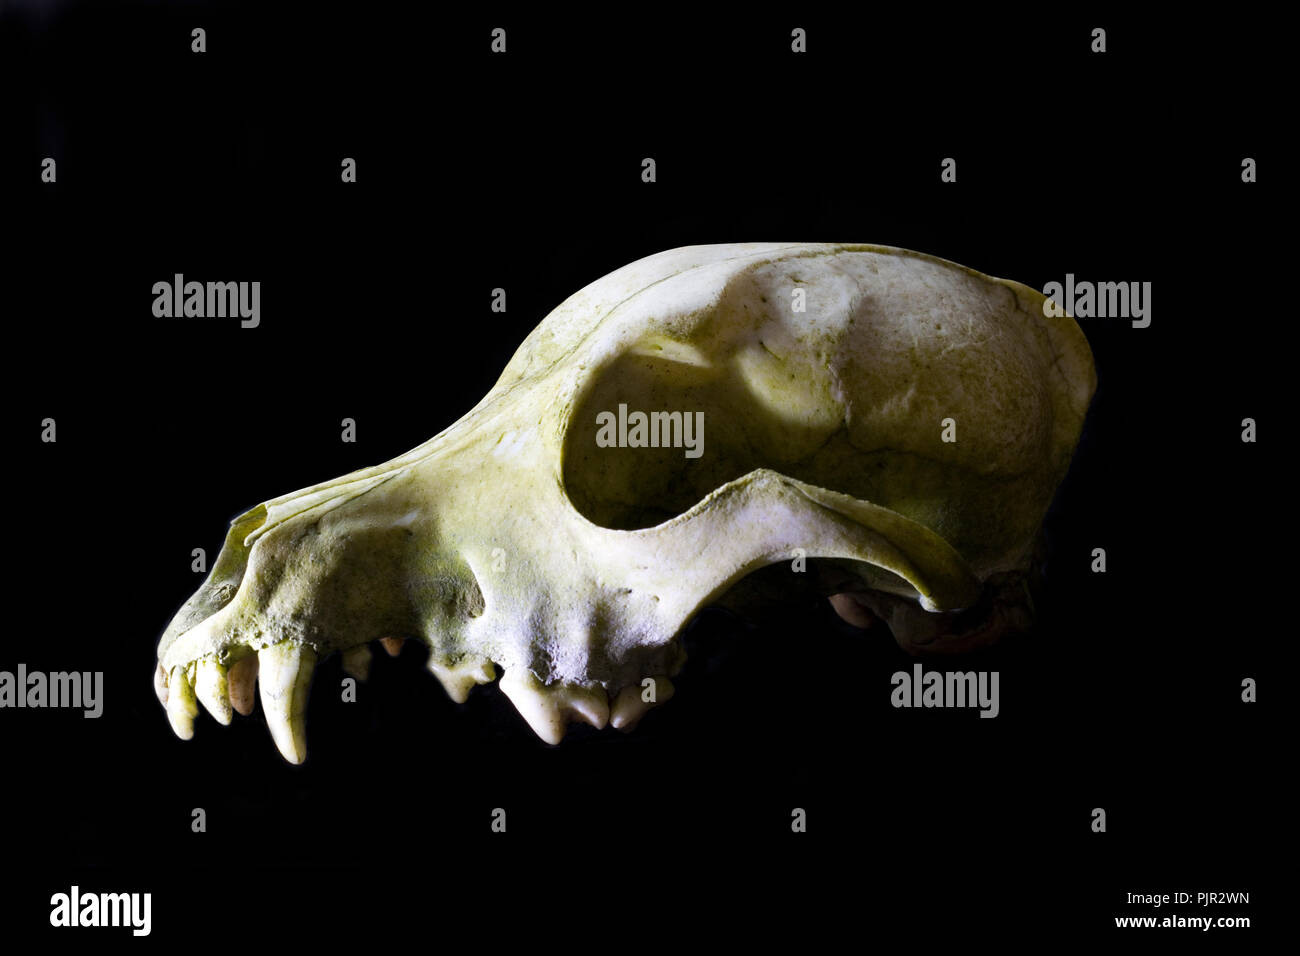 Dog skull close up in high contrast. Illustrative view of death and decay. White bones on a black background. - Stock Image